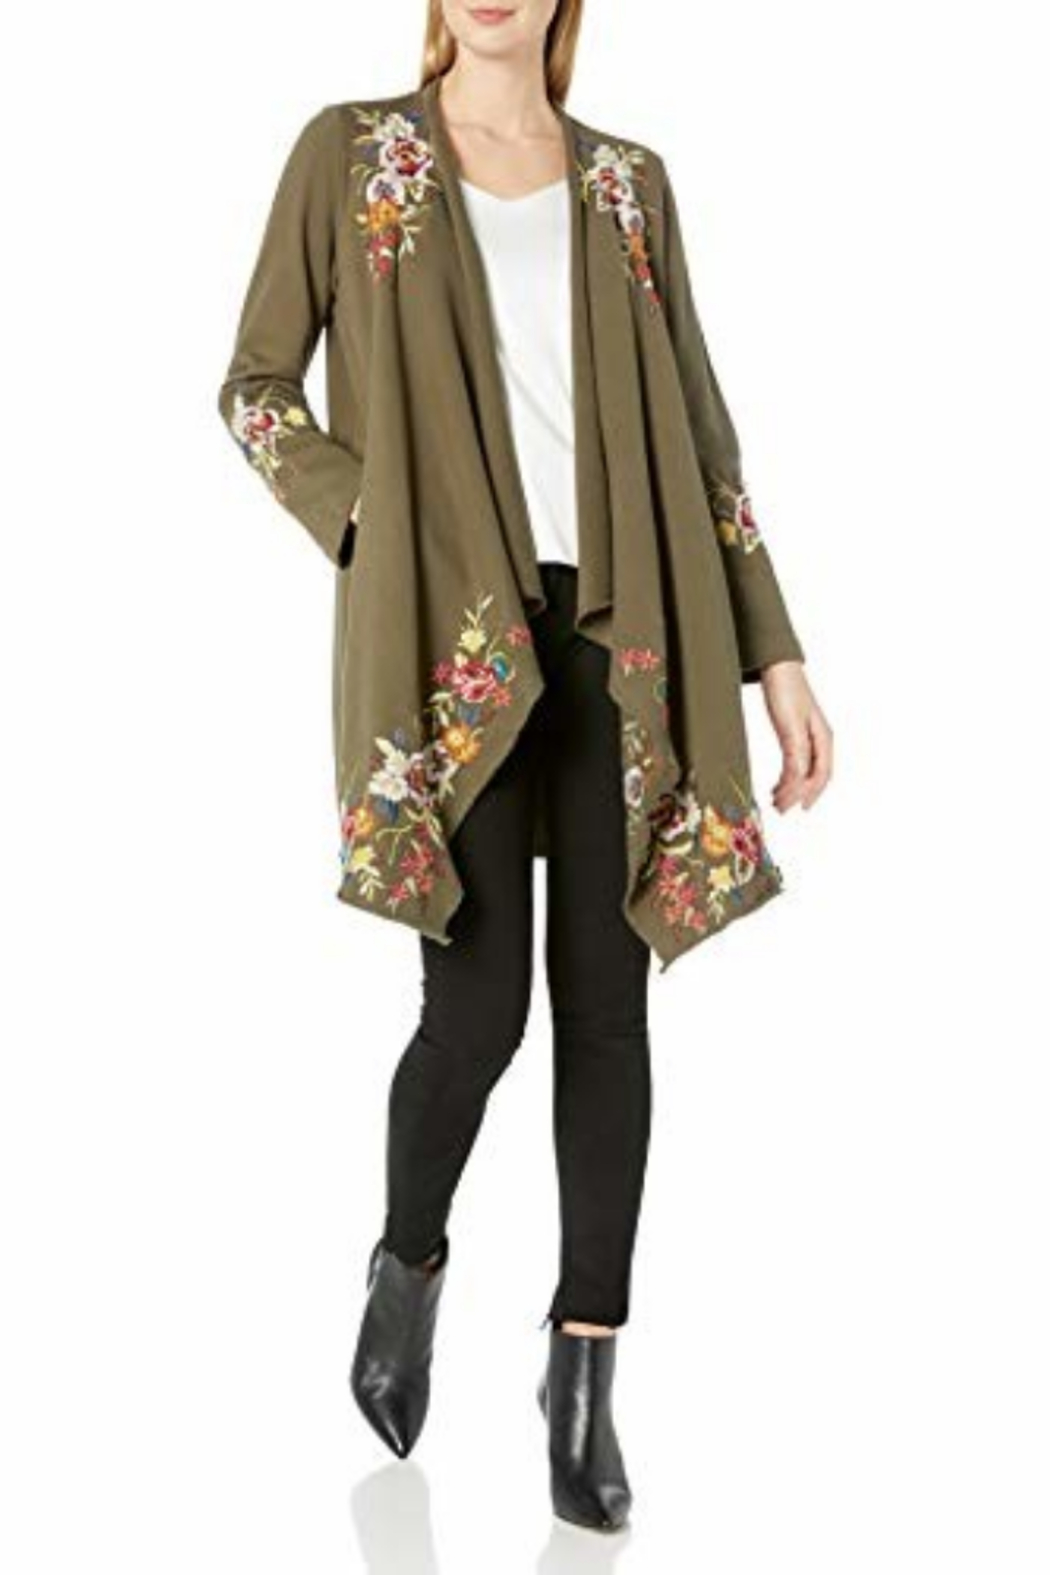 Johnny Was J41820-O - Adah F.T. Draped Cardigan Coat - Front Full Image